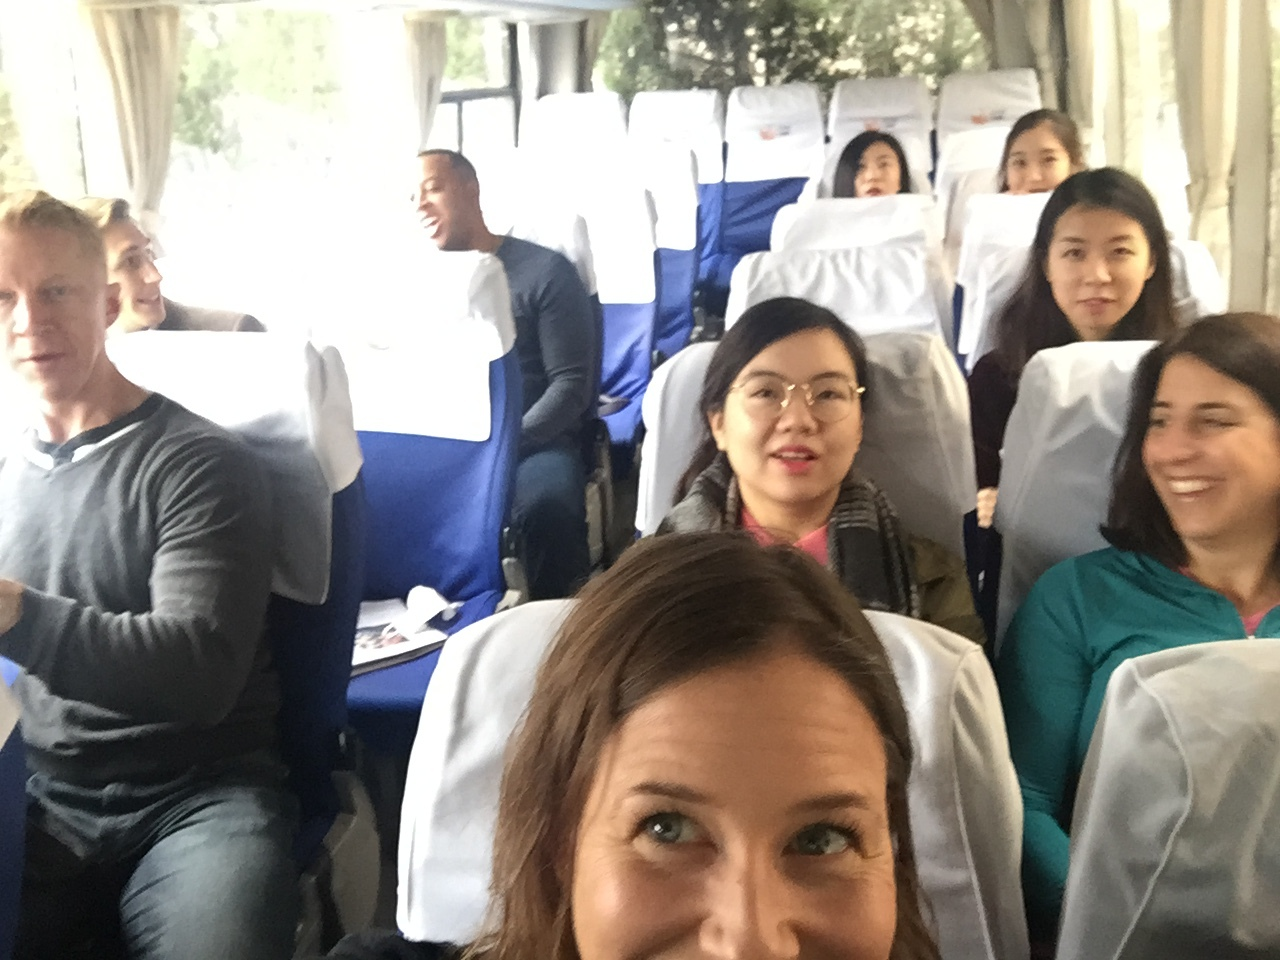 Buses make getting around Beijing a breeze